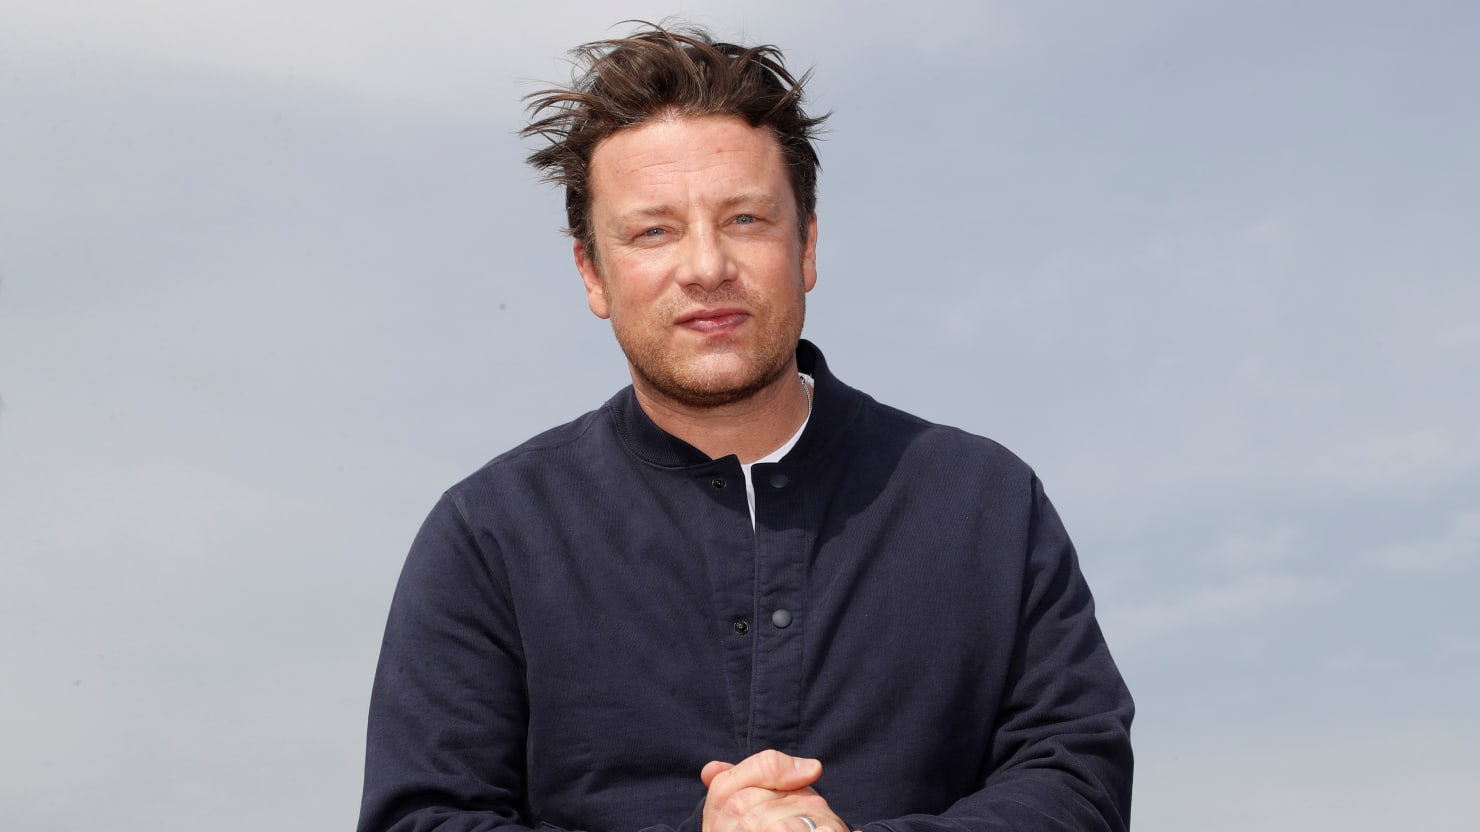 Jamie Oliver's Restaurant Chain Collapses, Over 1,000 Jobs Now At Risk